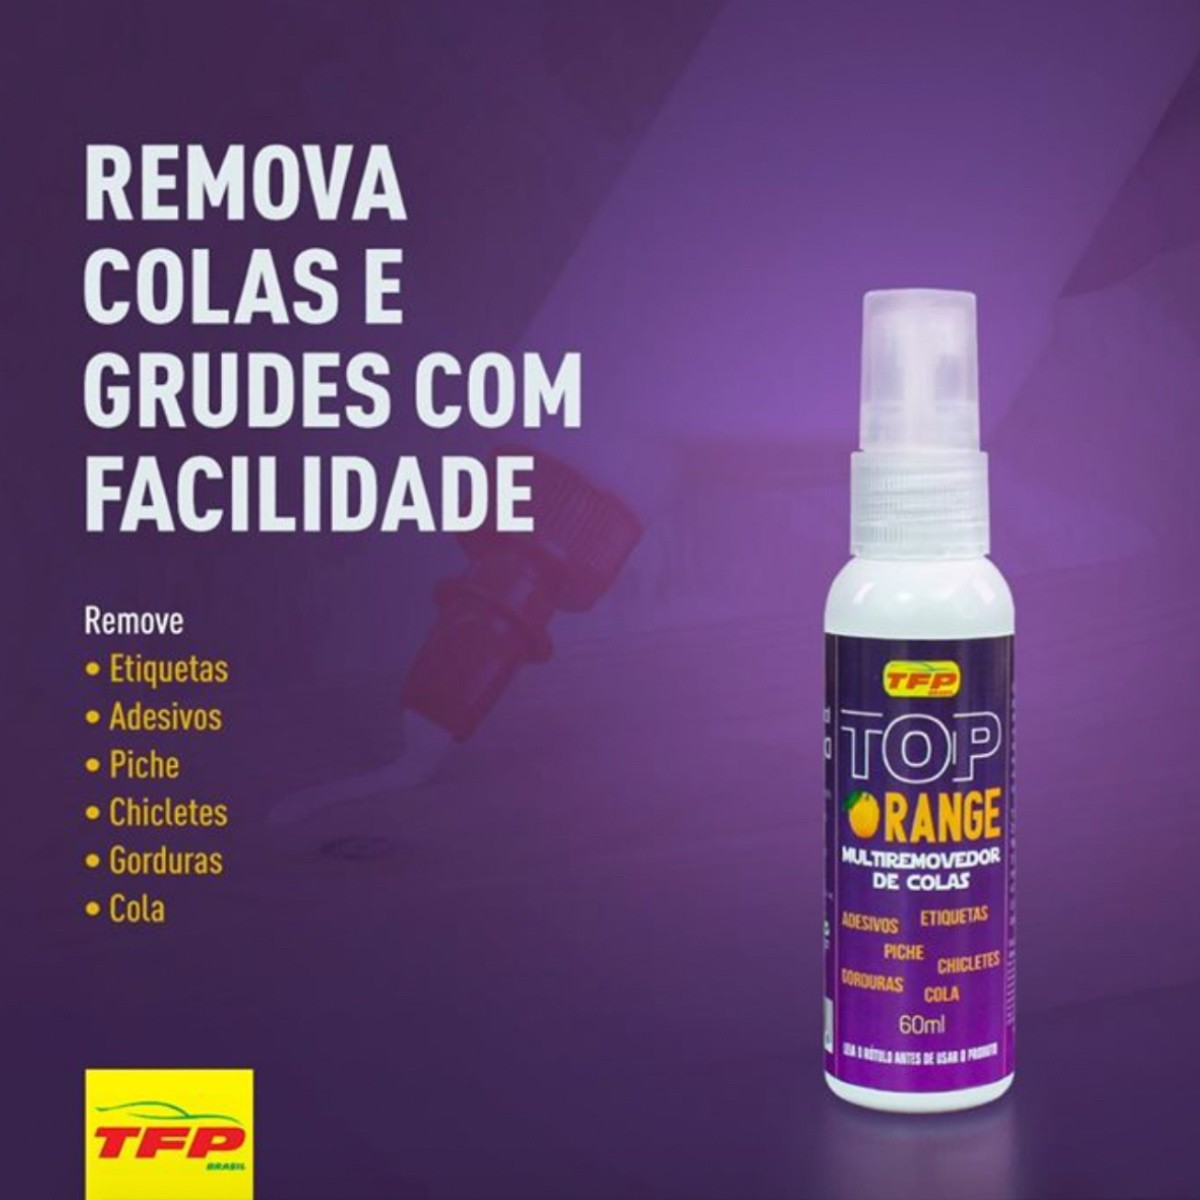 Remove Colas, Grudes e Piche - Top Orange TFP 500ml